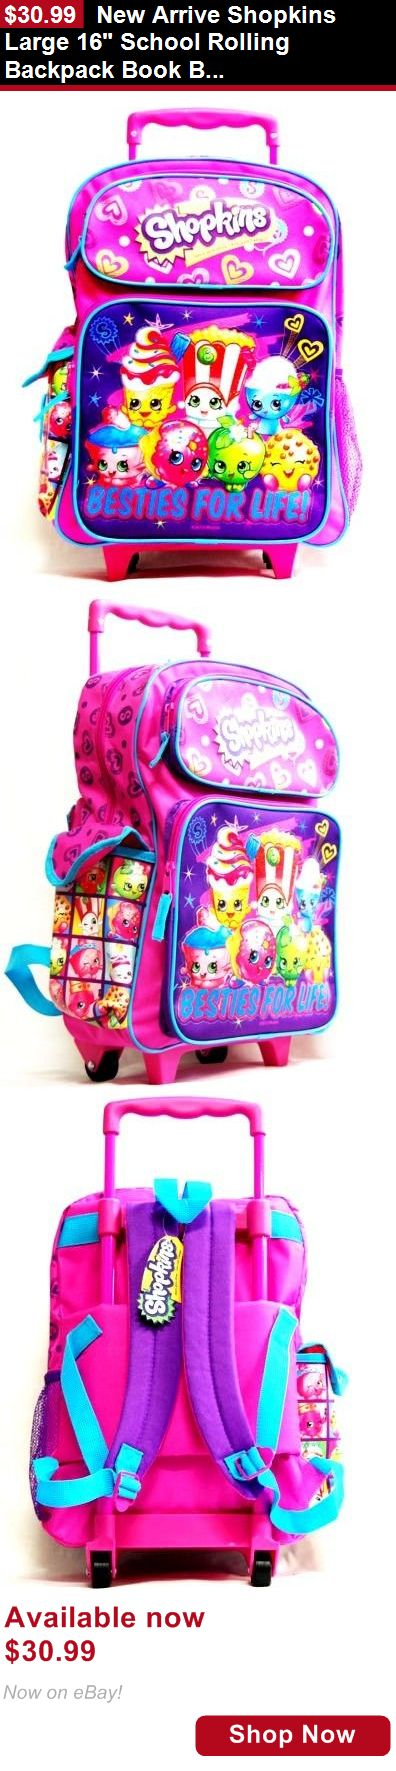 Children girls clothing shoes and accessories: New Arrive Shopkins Large 16 School Rolling Backpack Book Bag-Purple BUY IT NOW ONLY: $30.99